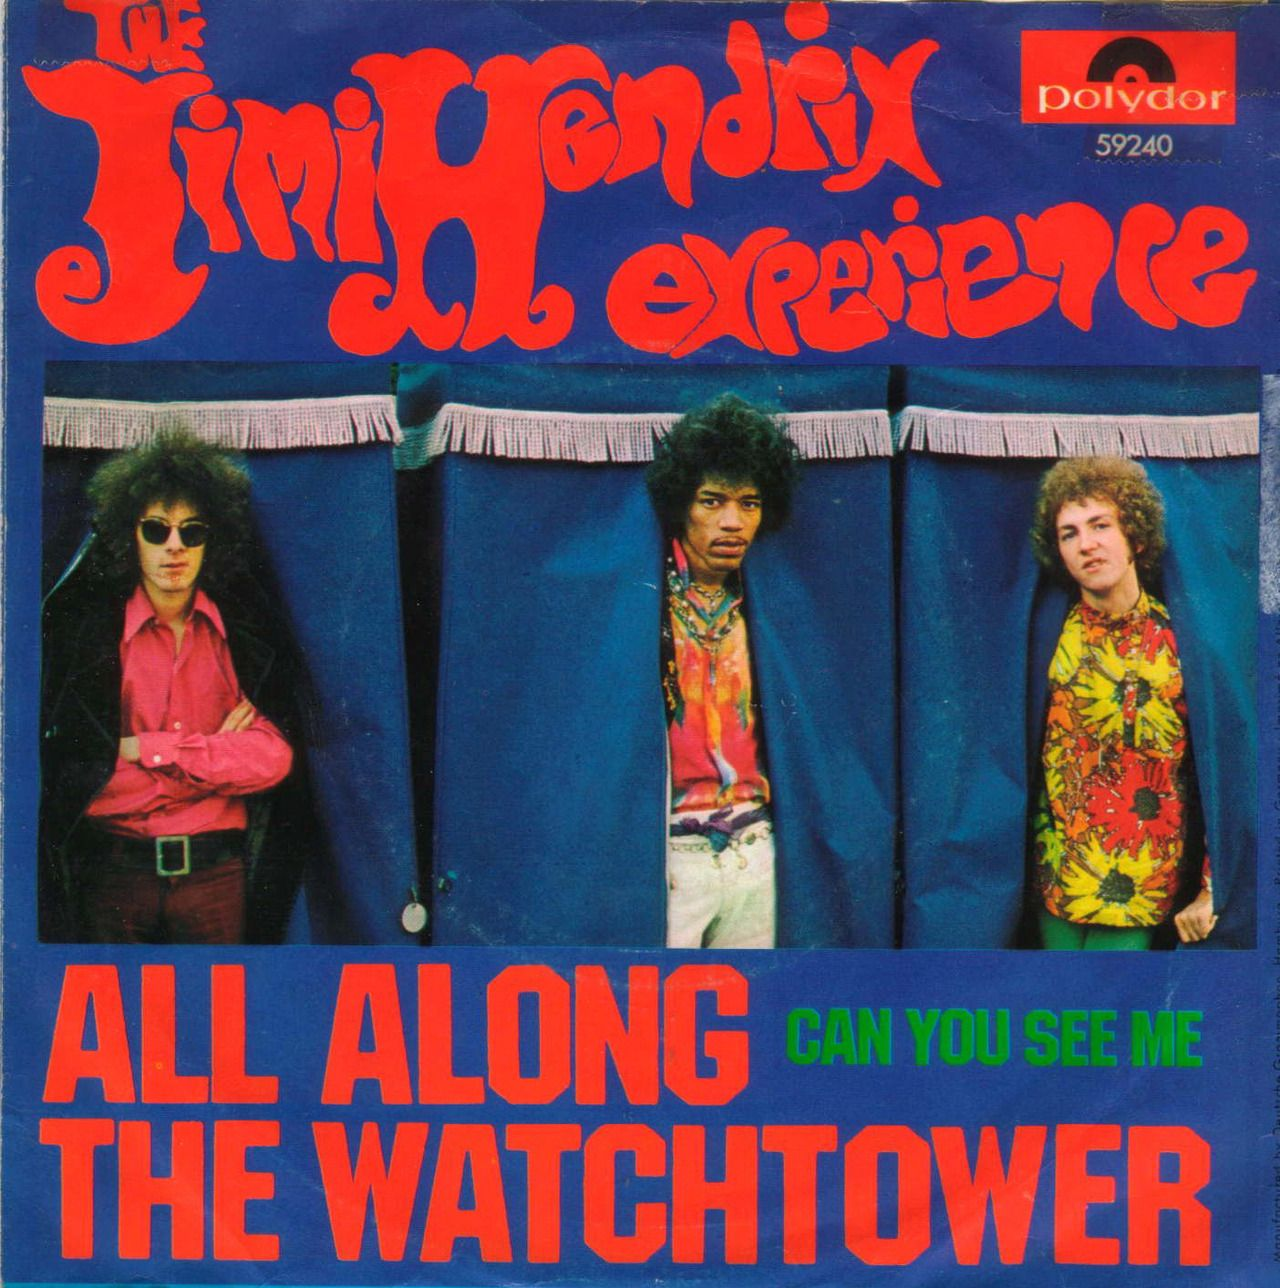 The Jimi Hendrix Experience All Along The Watchtower 1968